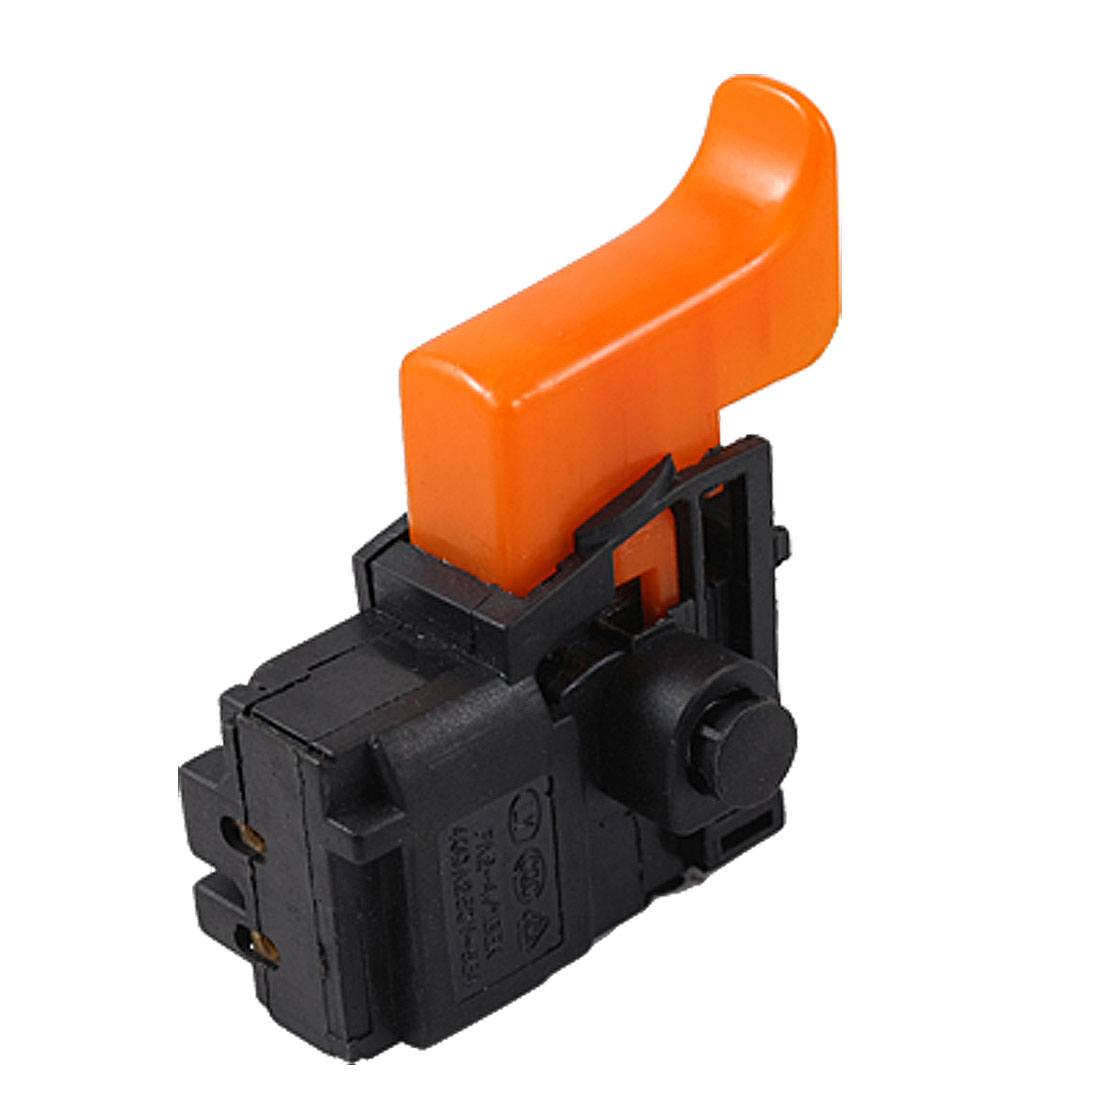 4A Lock On Type Electric Tool Switch for Bosch GSB 20-2